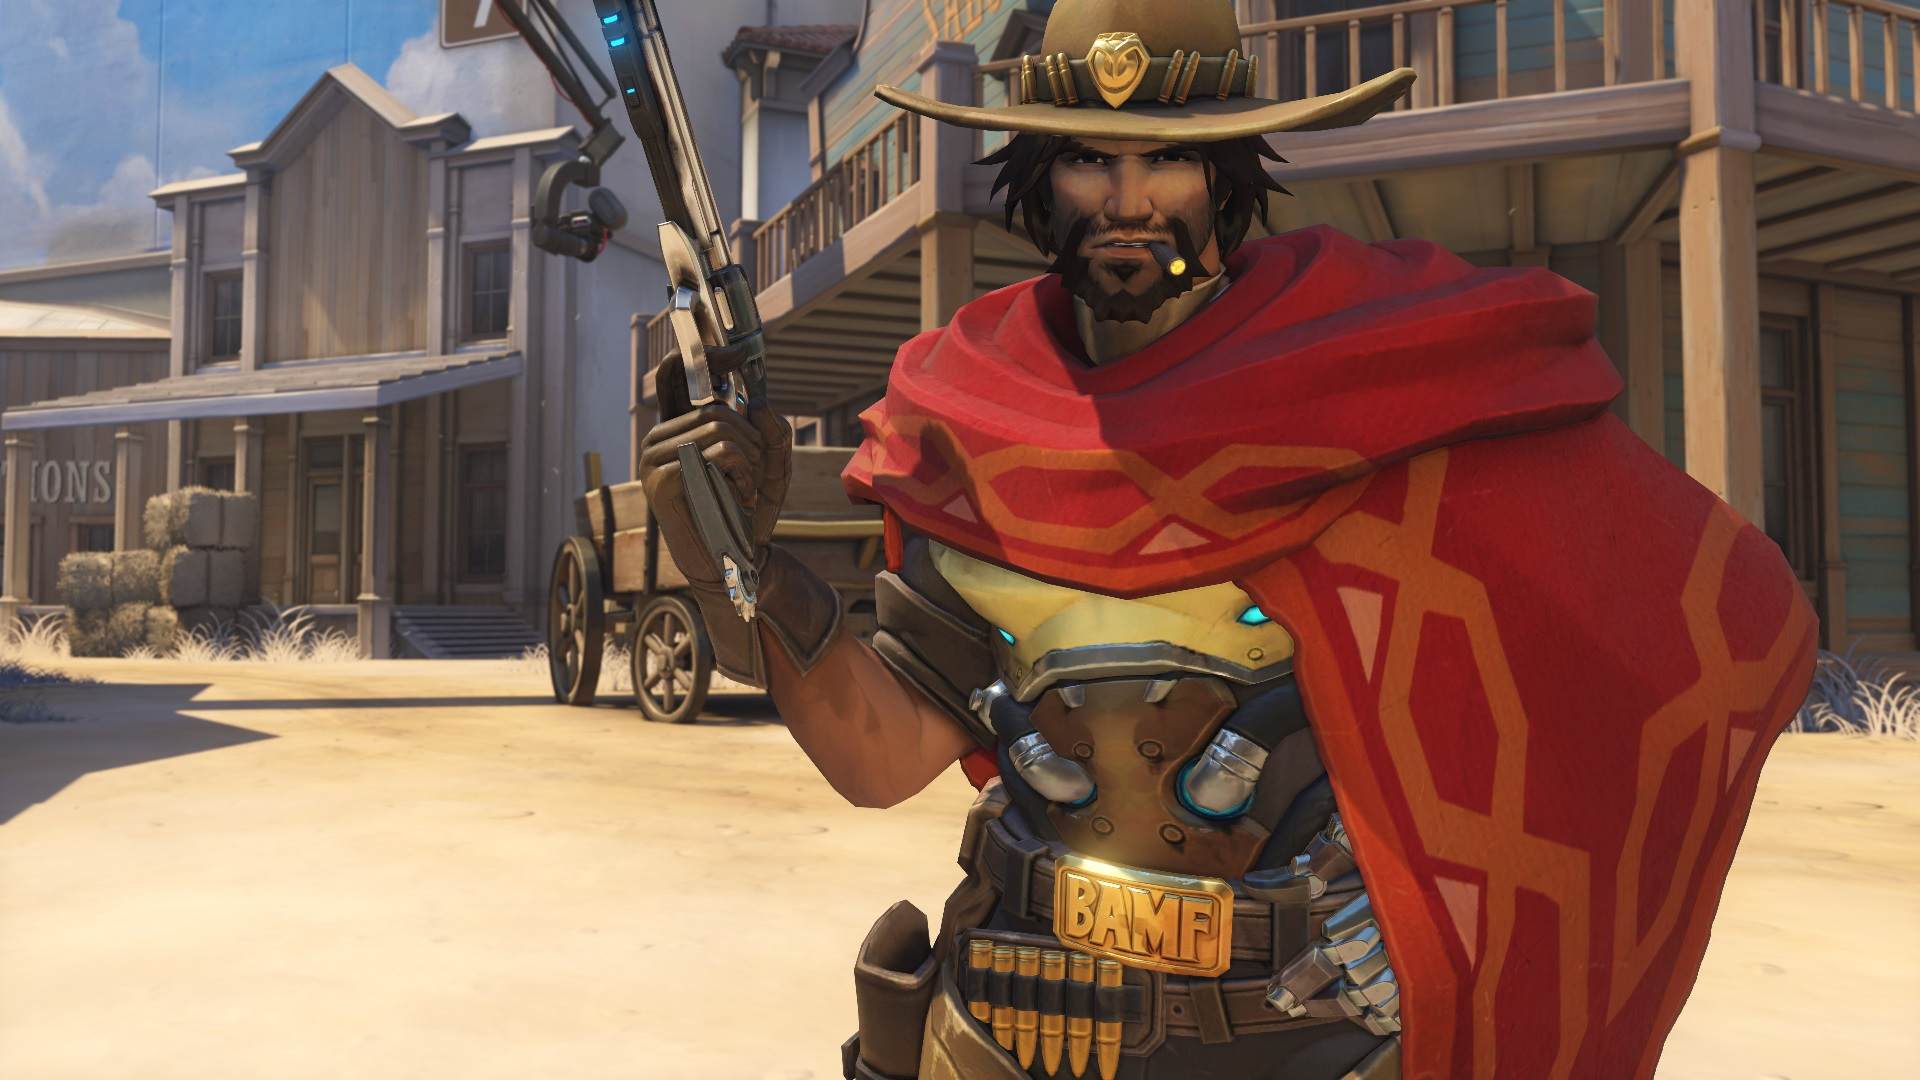 Who you kidding? McCree is Overwatch's true shooter - Kill